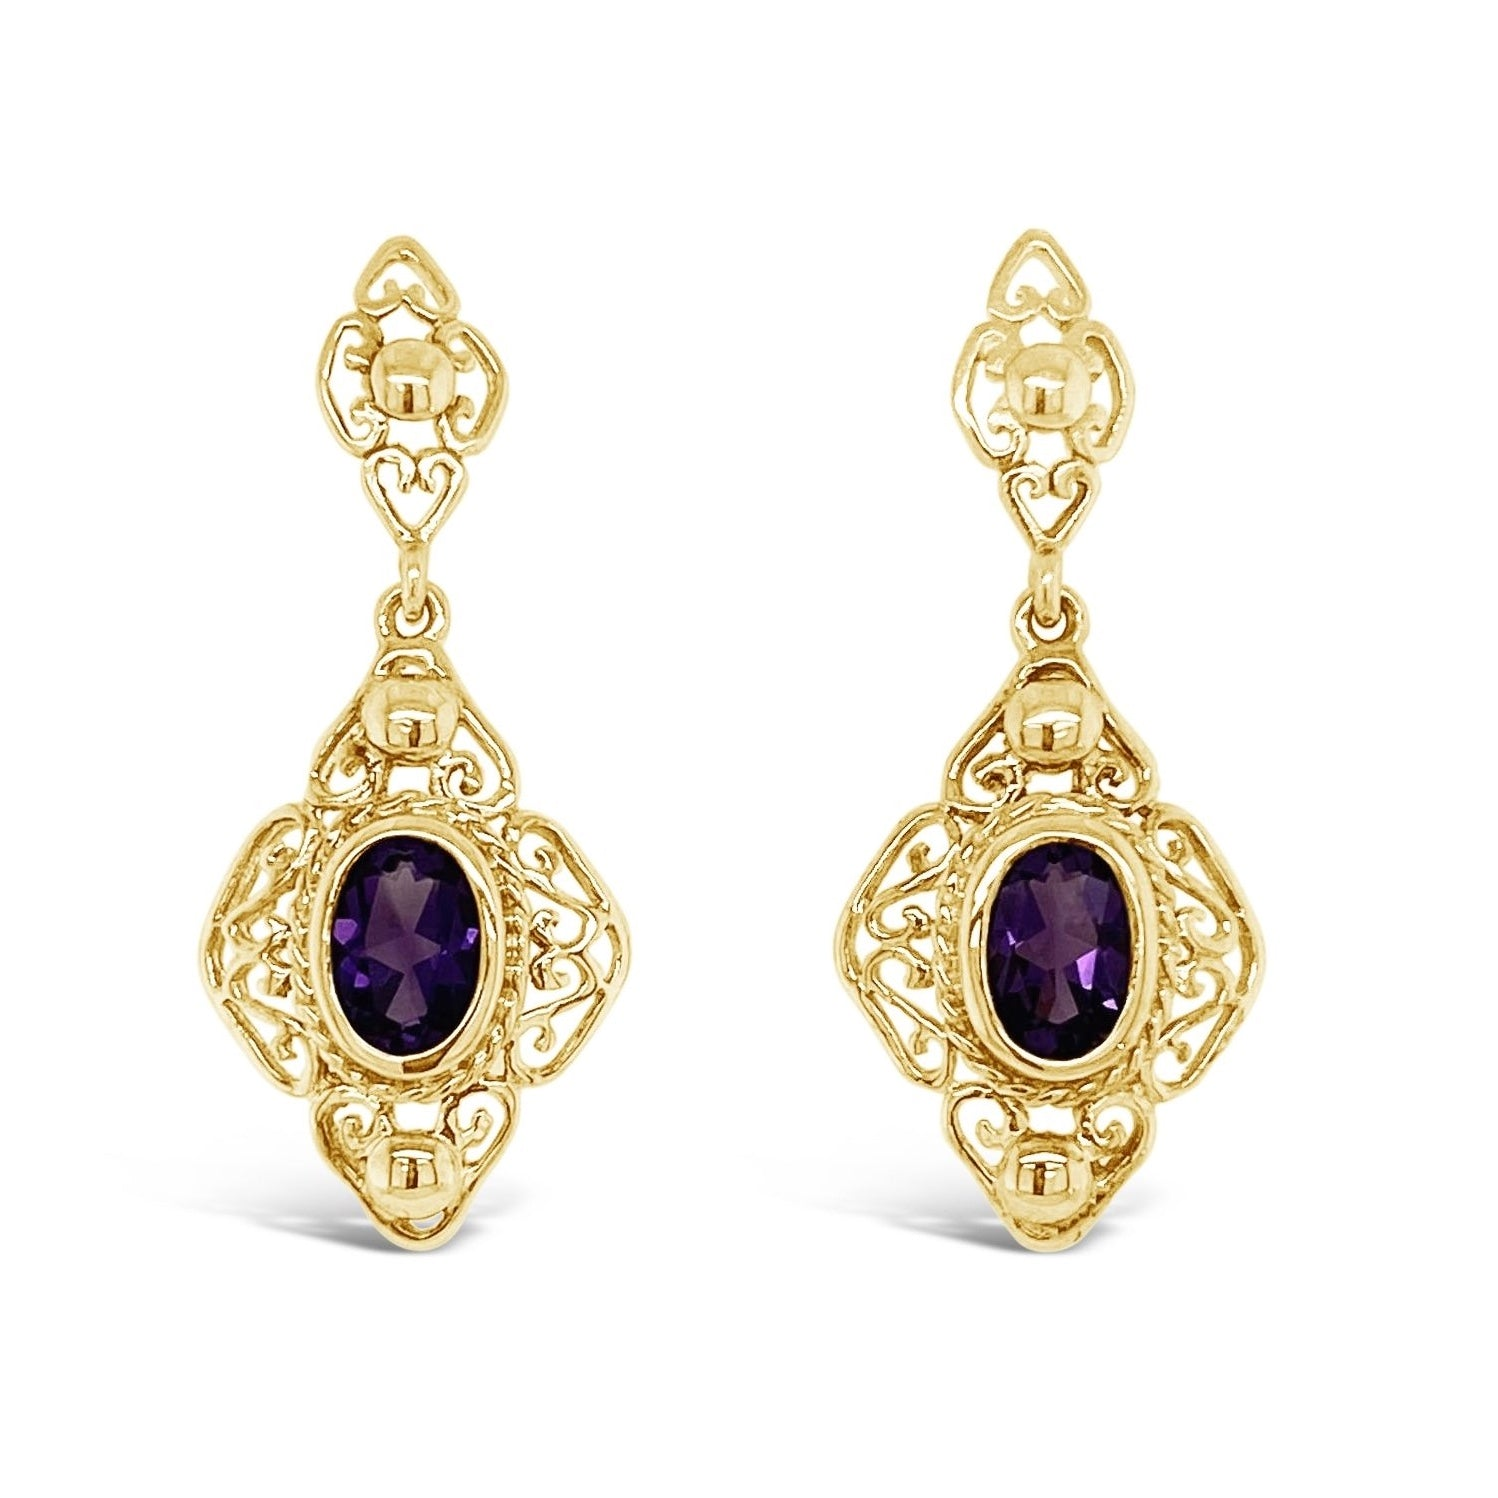 Vintage Style Amethyst Drop Earrings